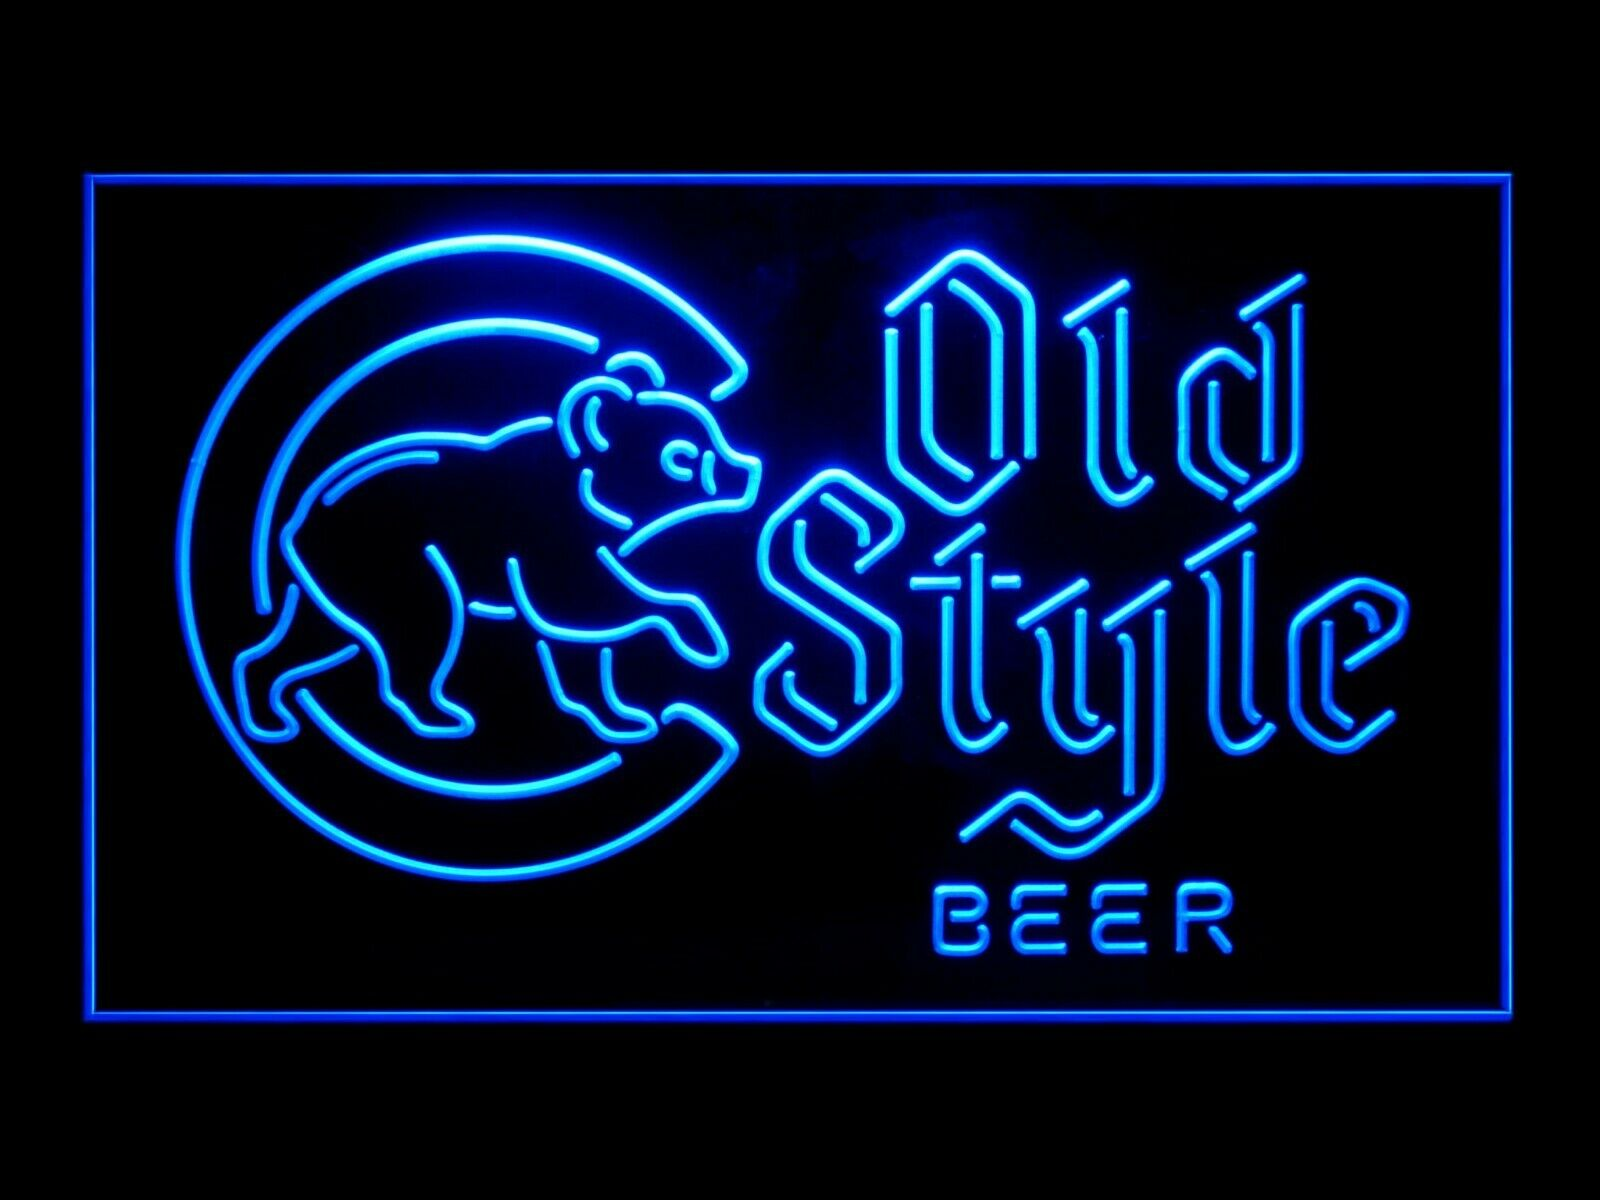 P636B Old Style Beer Light Sign